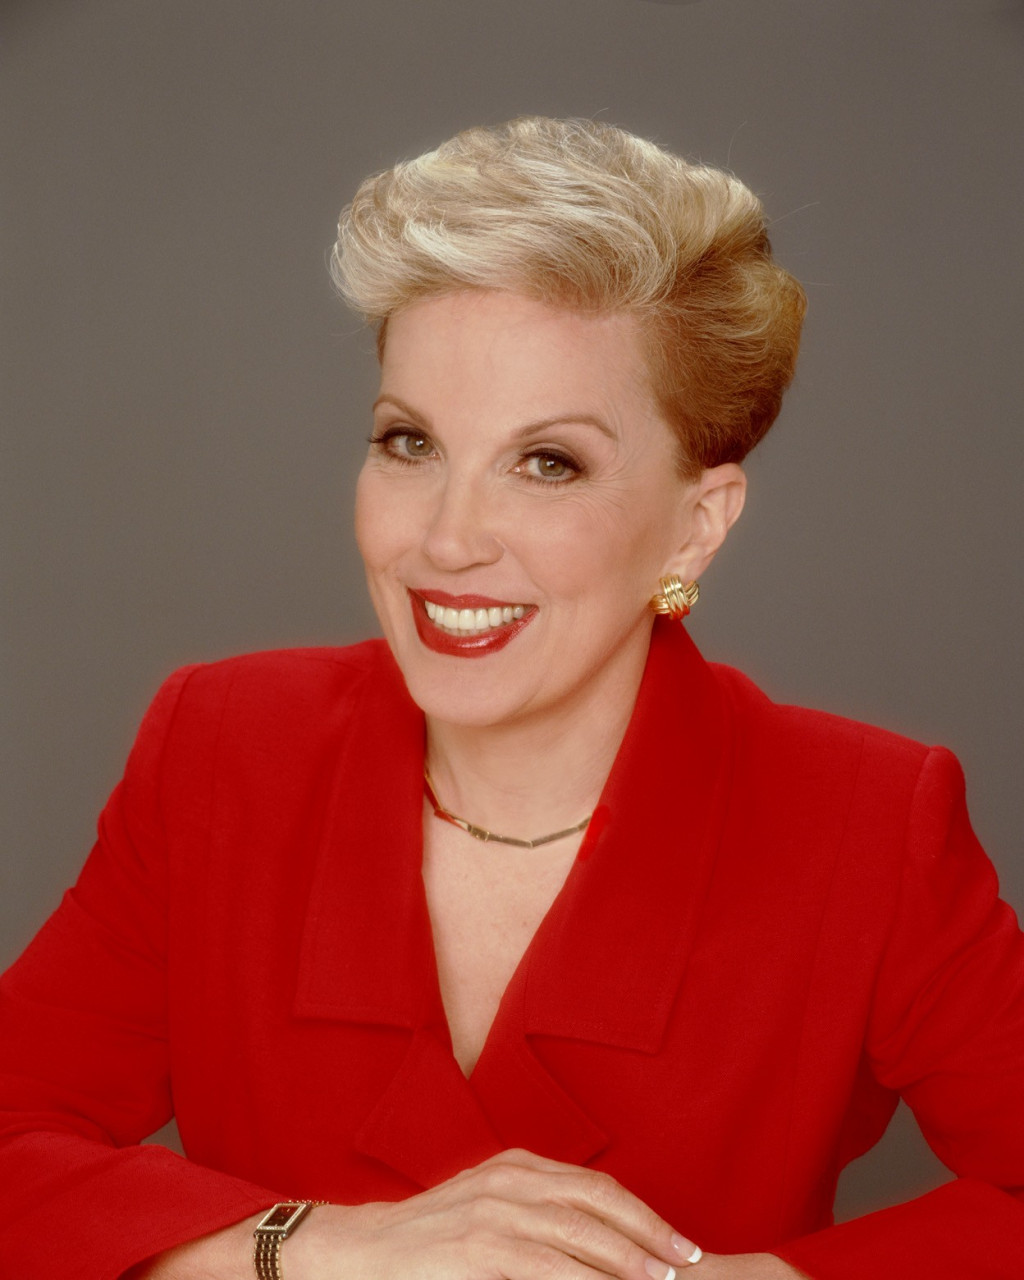 Dear Abby: Social skills are 'rusty' after pandemic lockdown